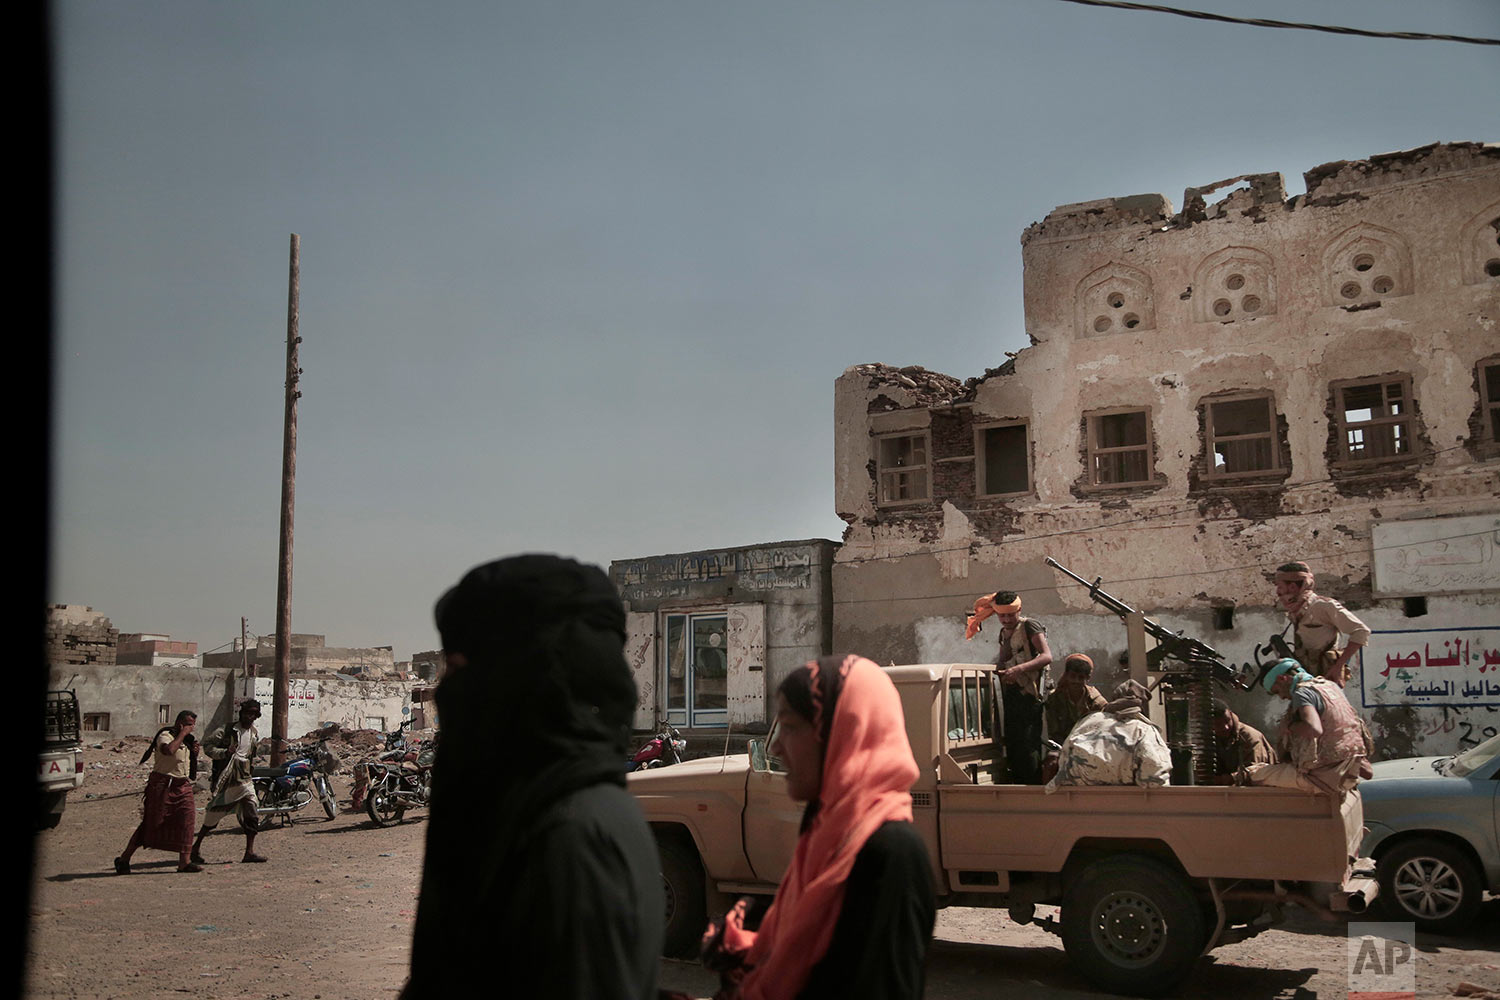 Women walk past Saudi-led coalition backed forces, leading the campaign to take over Hodeida, as they patrol Mocha, a port city on the Red Sea coast of Yemen. (AP Photo/Nariman El-Mofty)